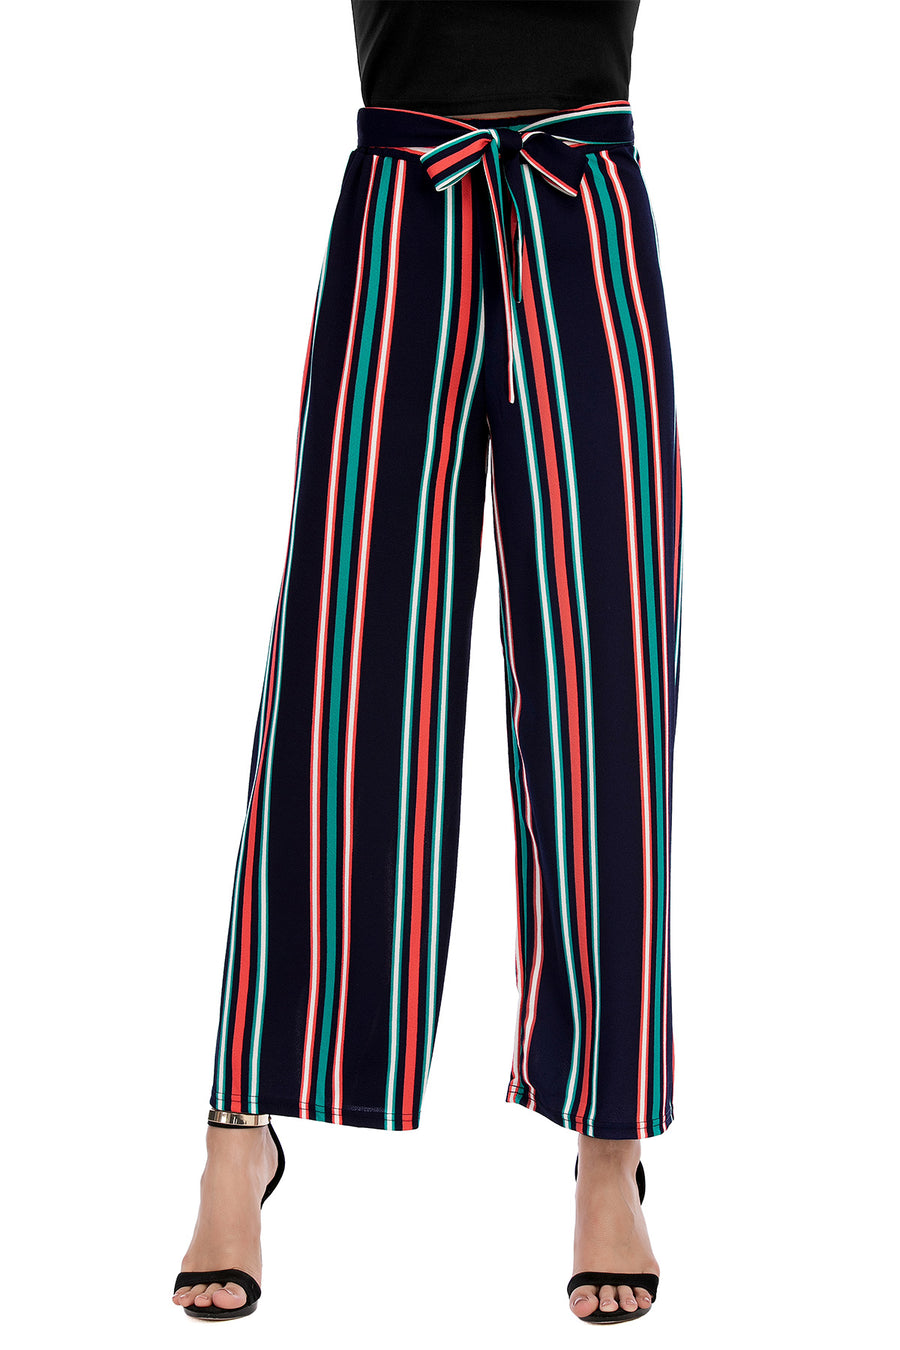 Blue Striped Trousers with Self Tie belt